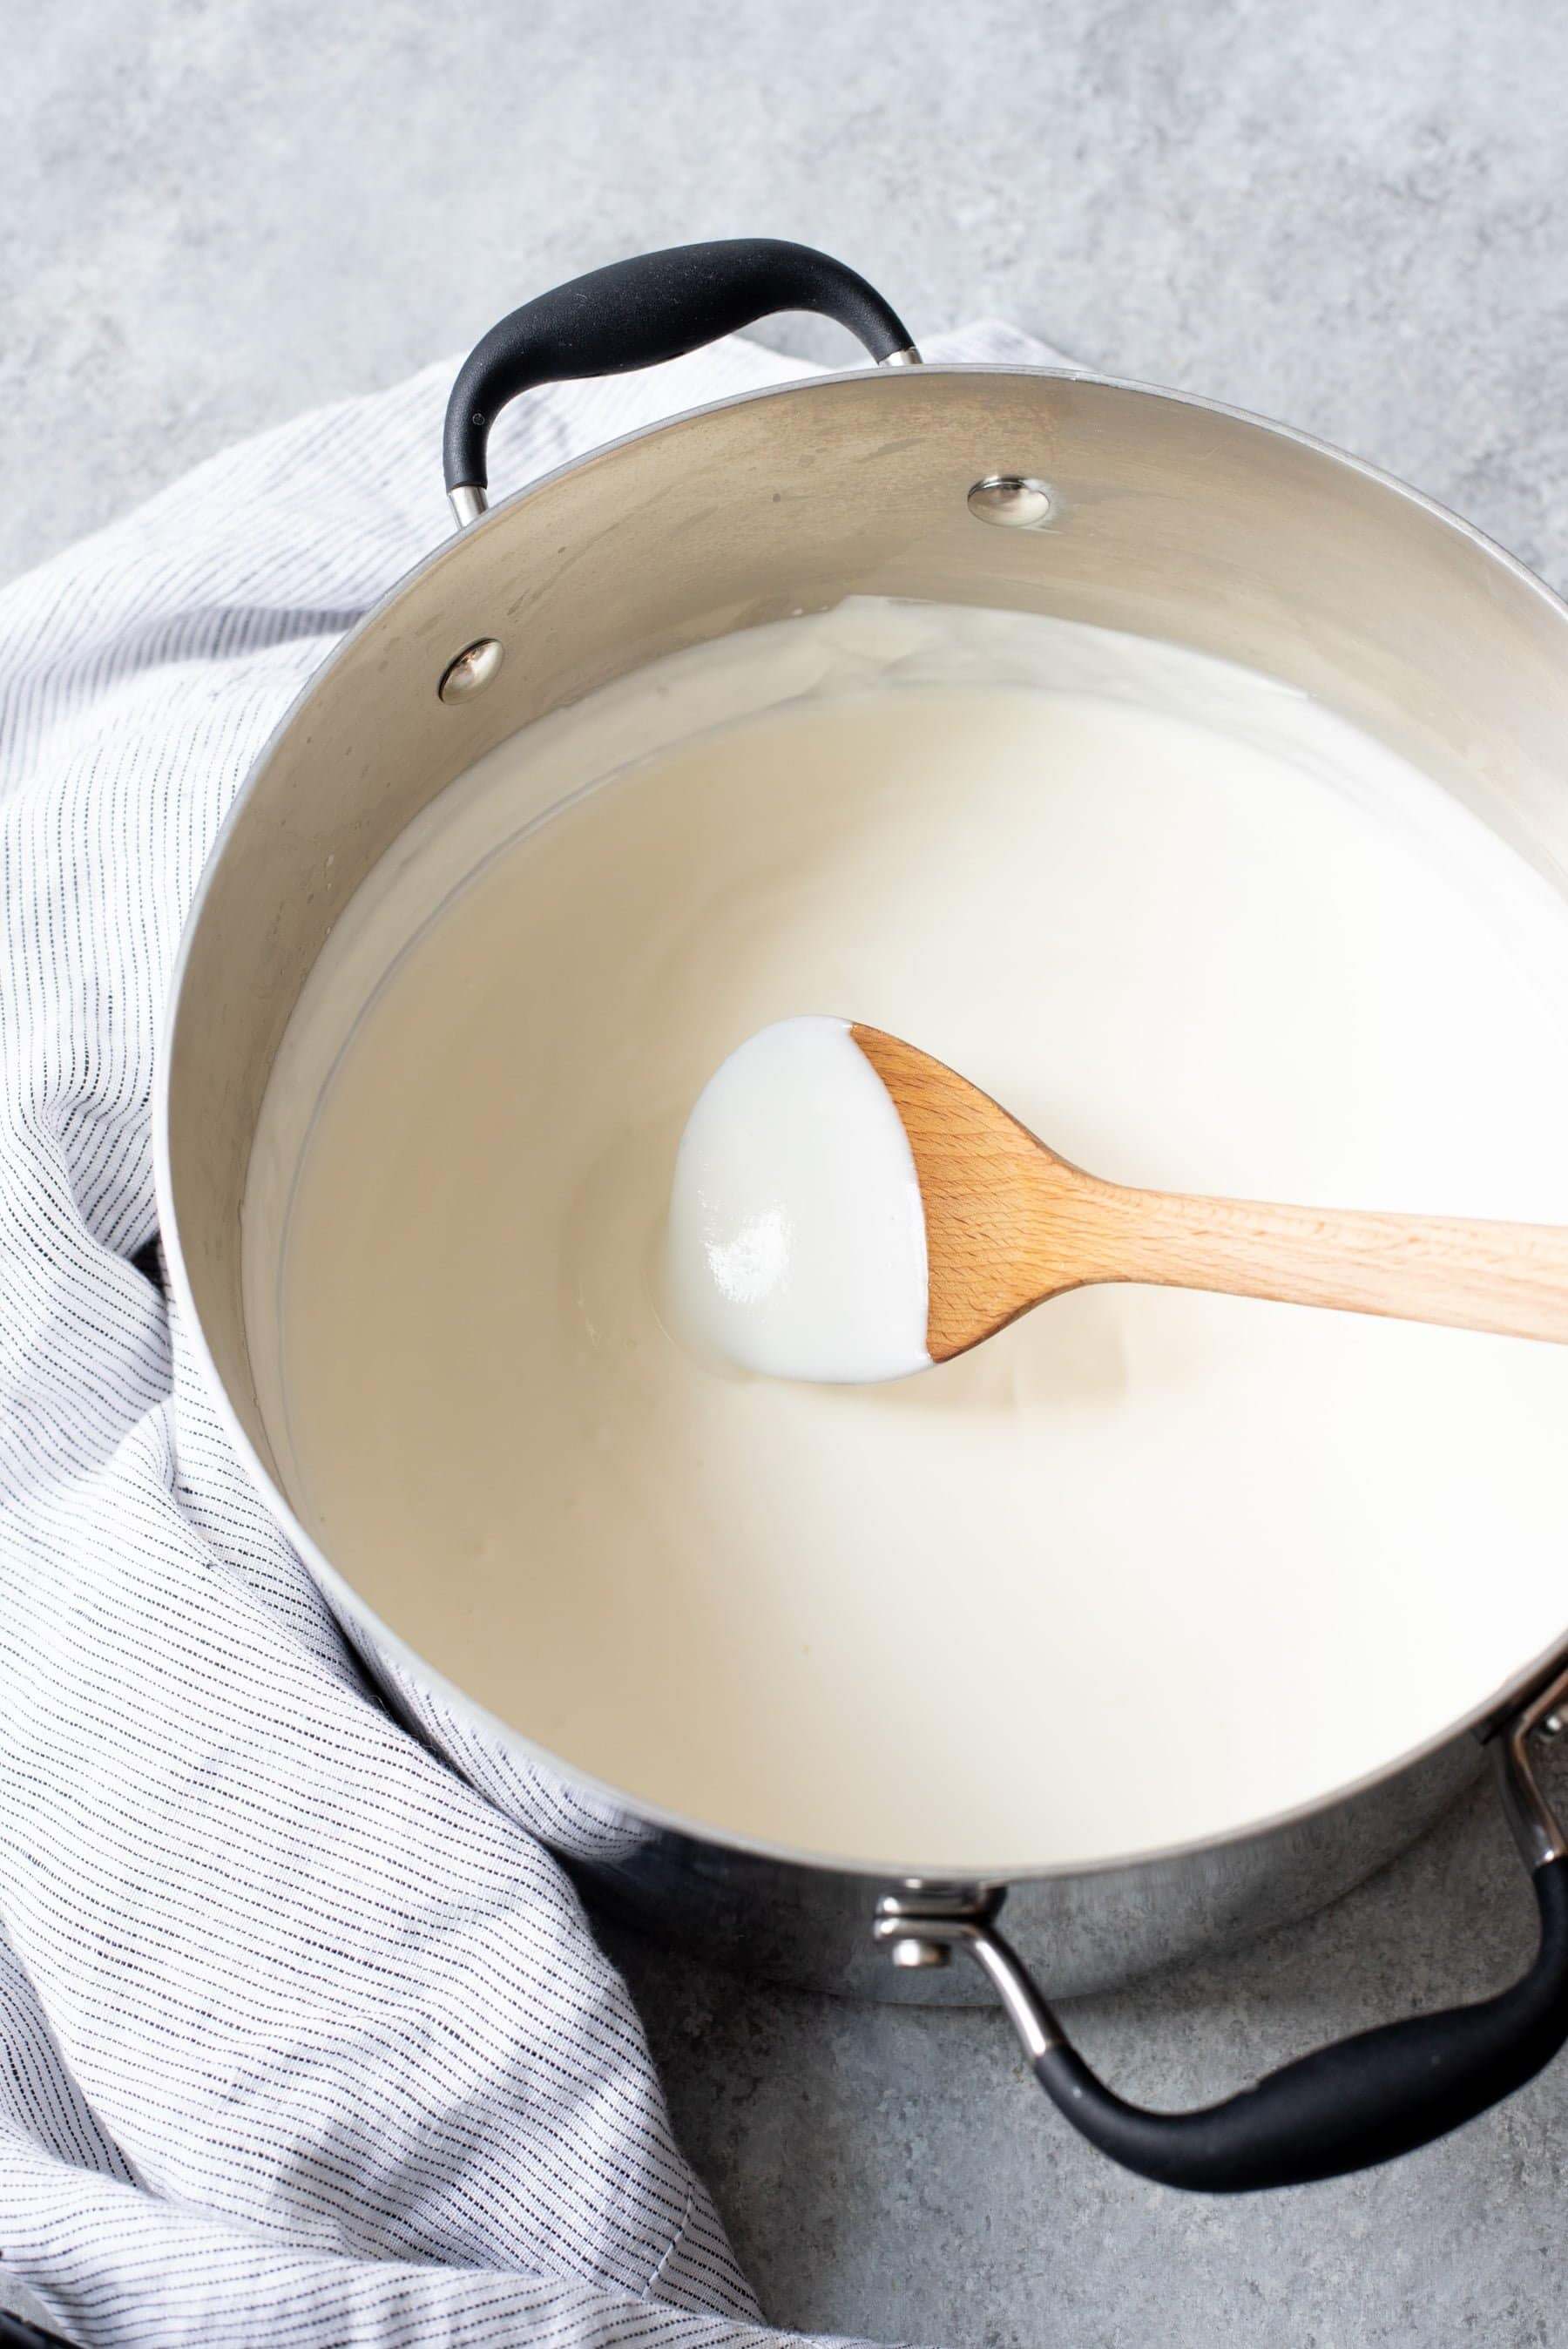 Wooden spoon stirring homemade yogurt in a soup pot